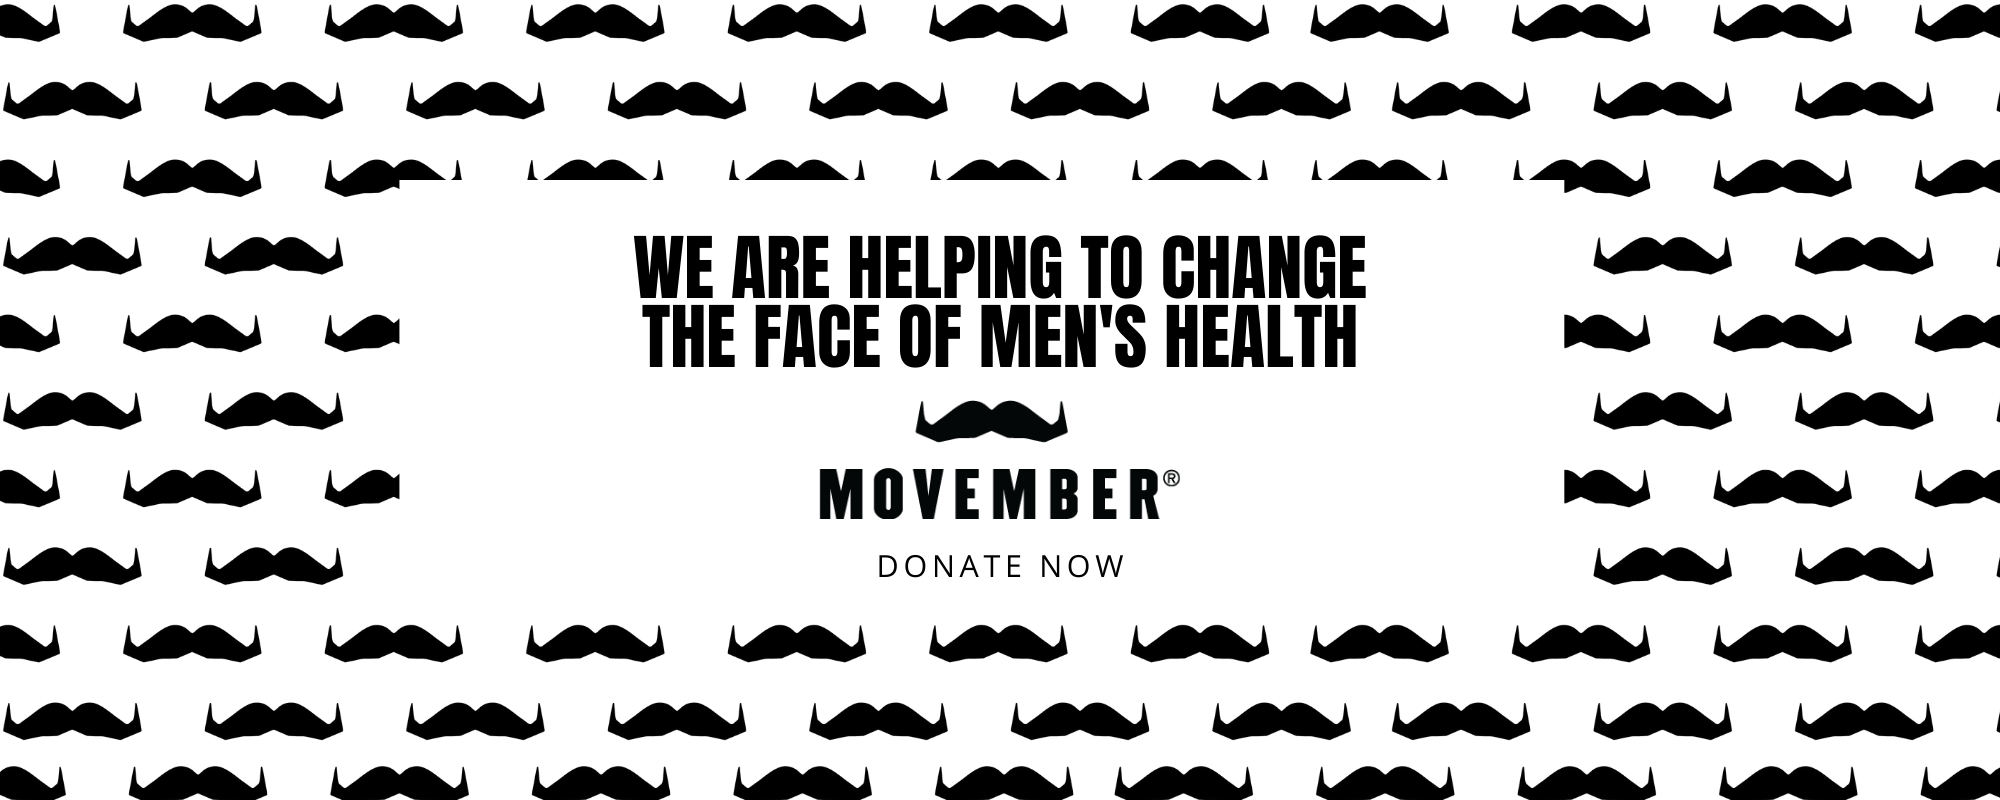 We are fundraising for Movember